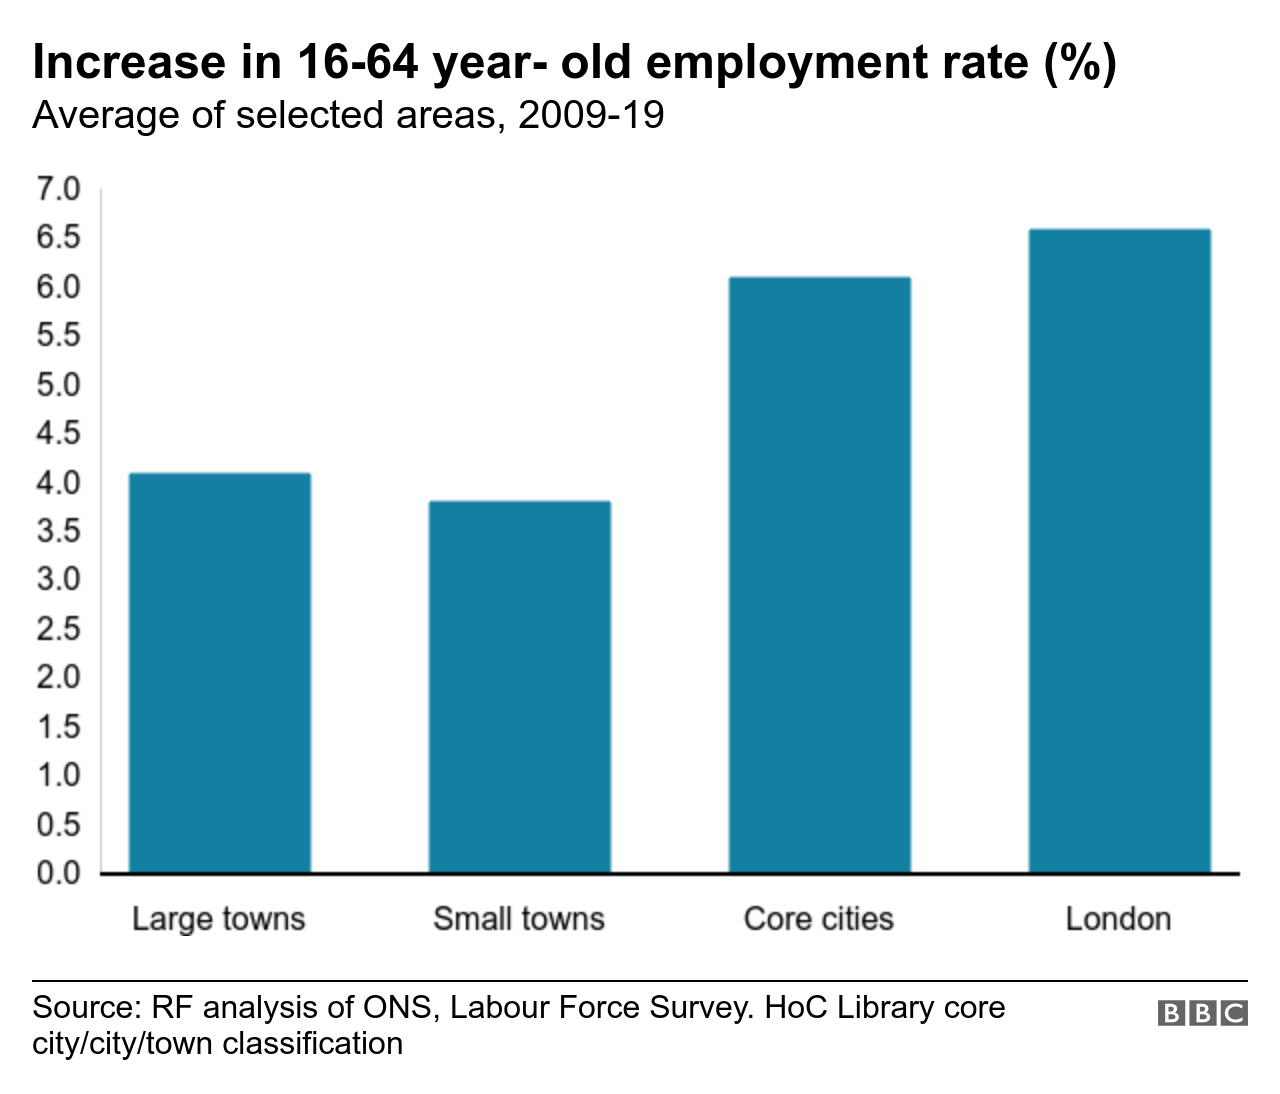 Chart showing increase in employment rate by size of population